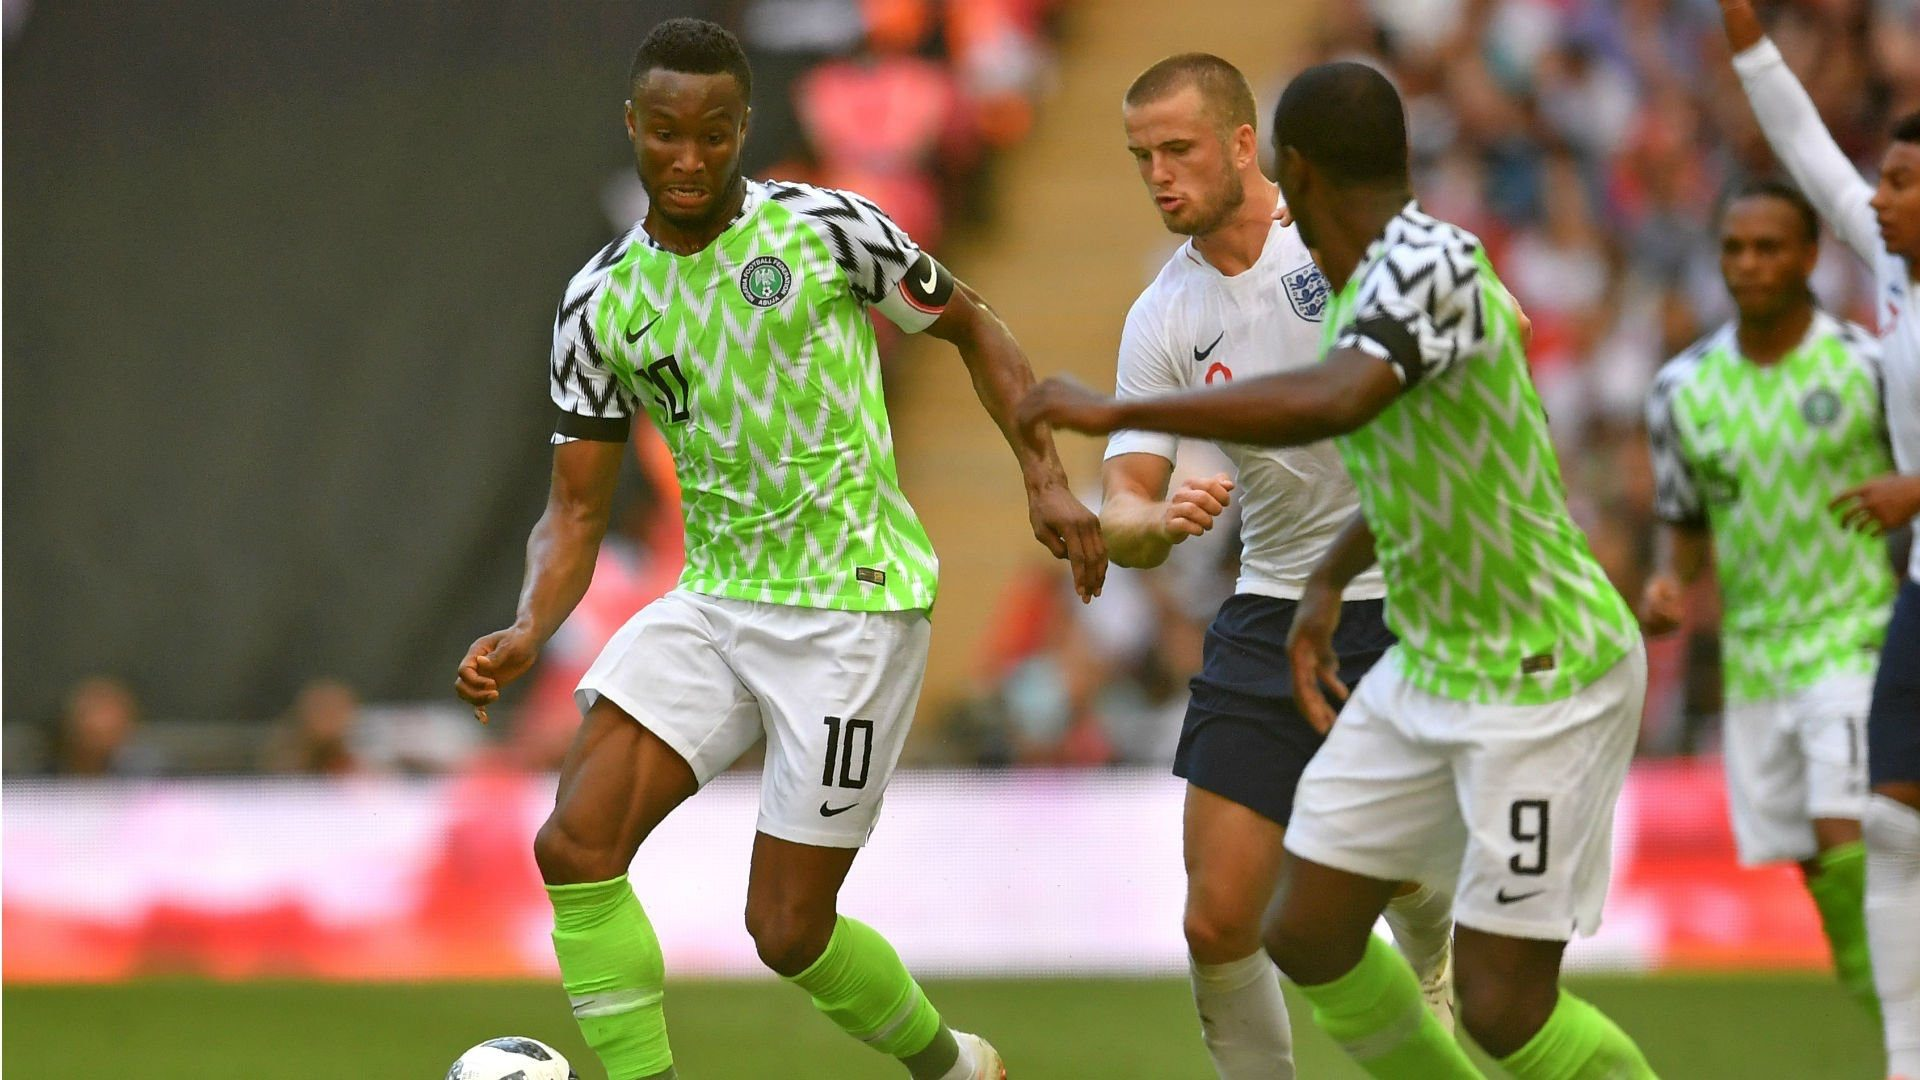 Super Eagles Captain – Mikel John Obi: 'We have to improve together as a team'